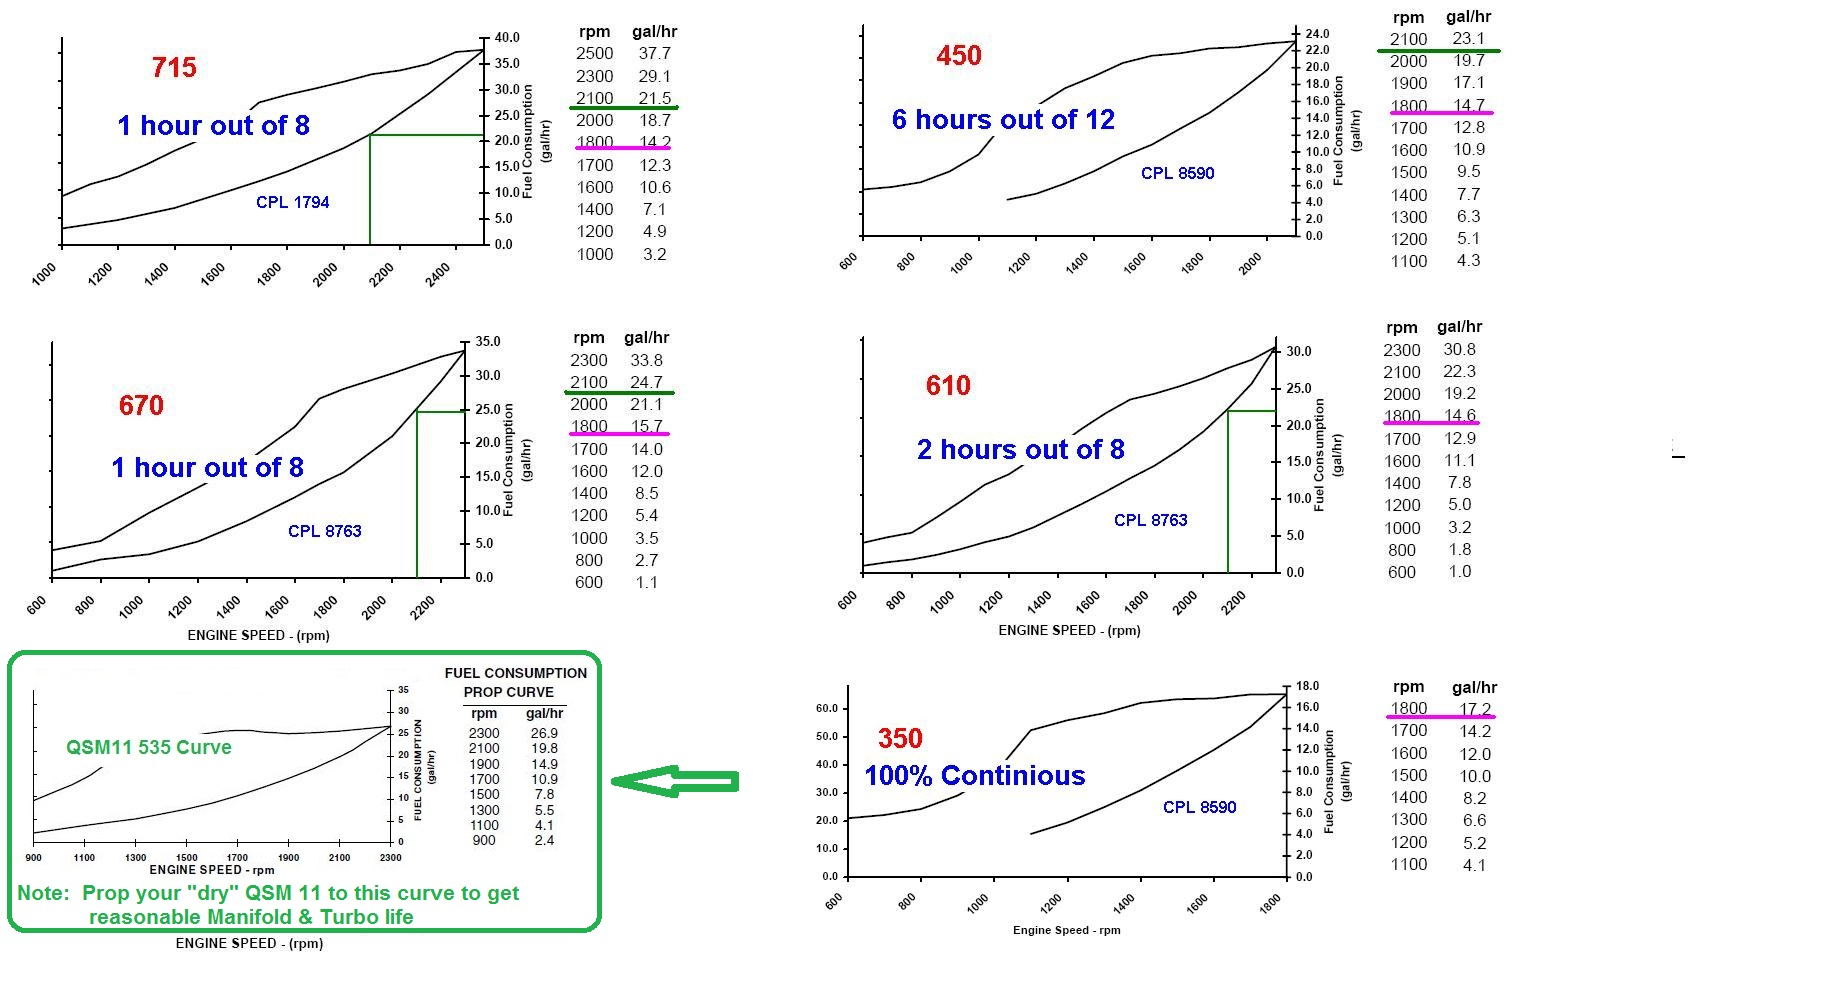 Comparing the QSM11 Performance Curves to the 535 HP Curve